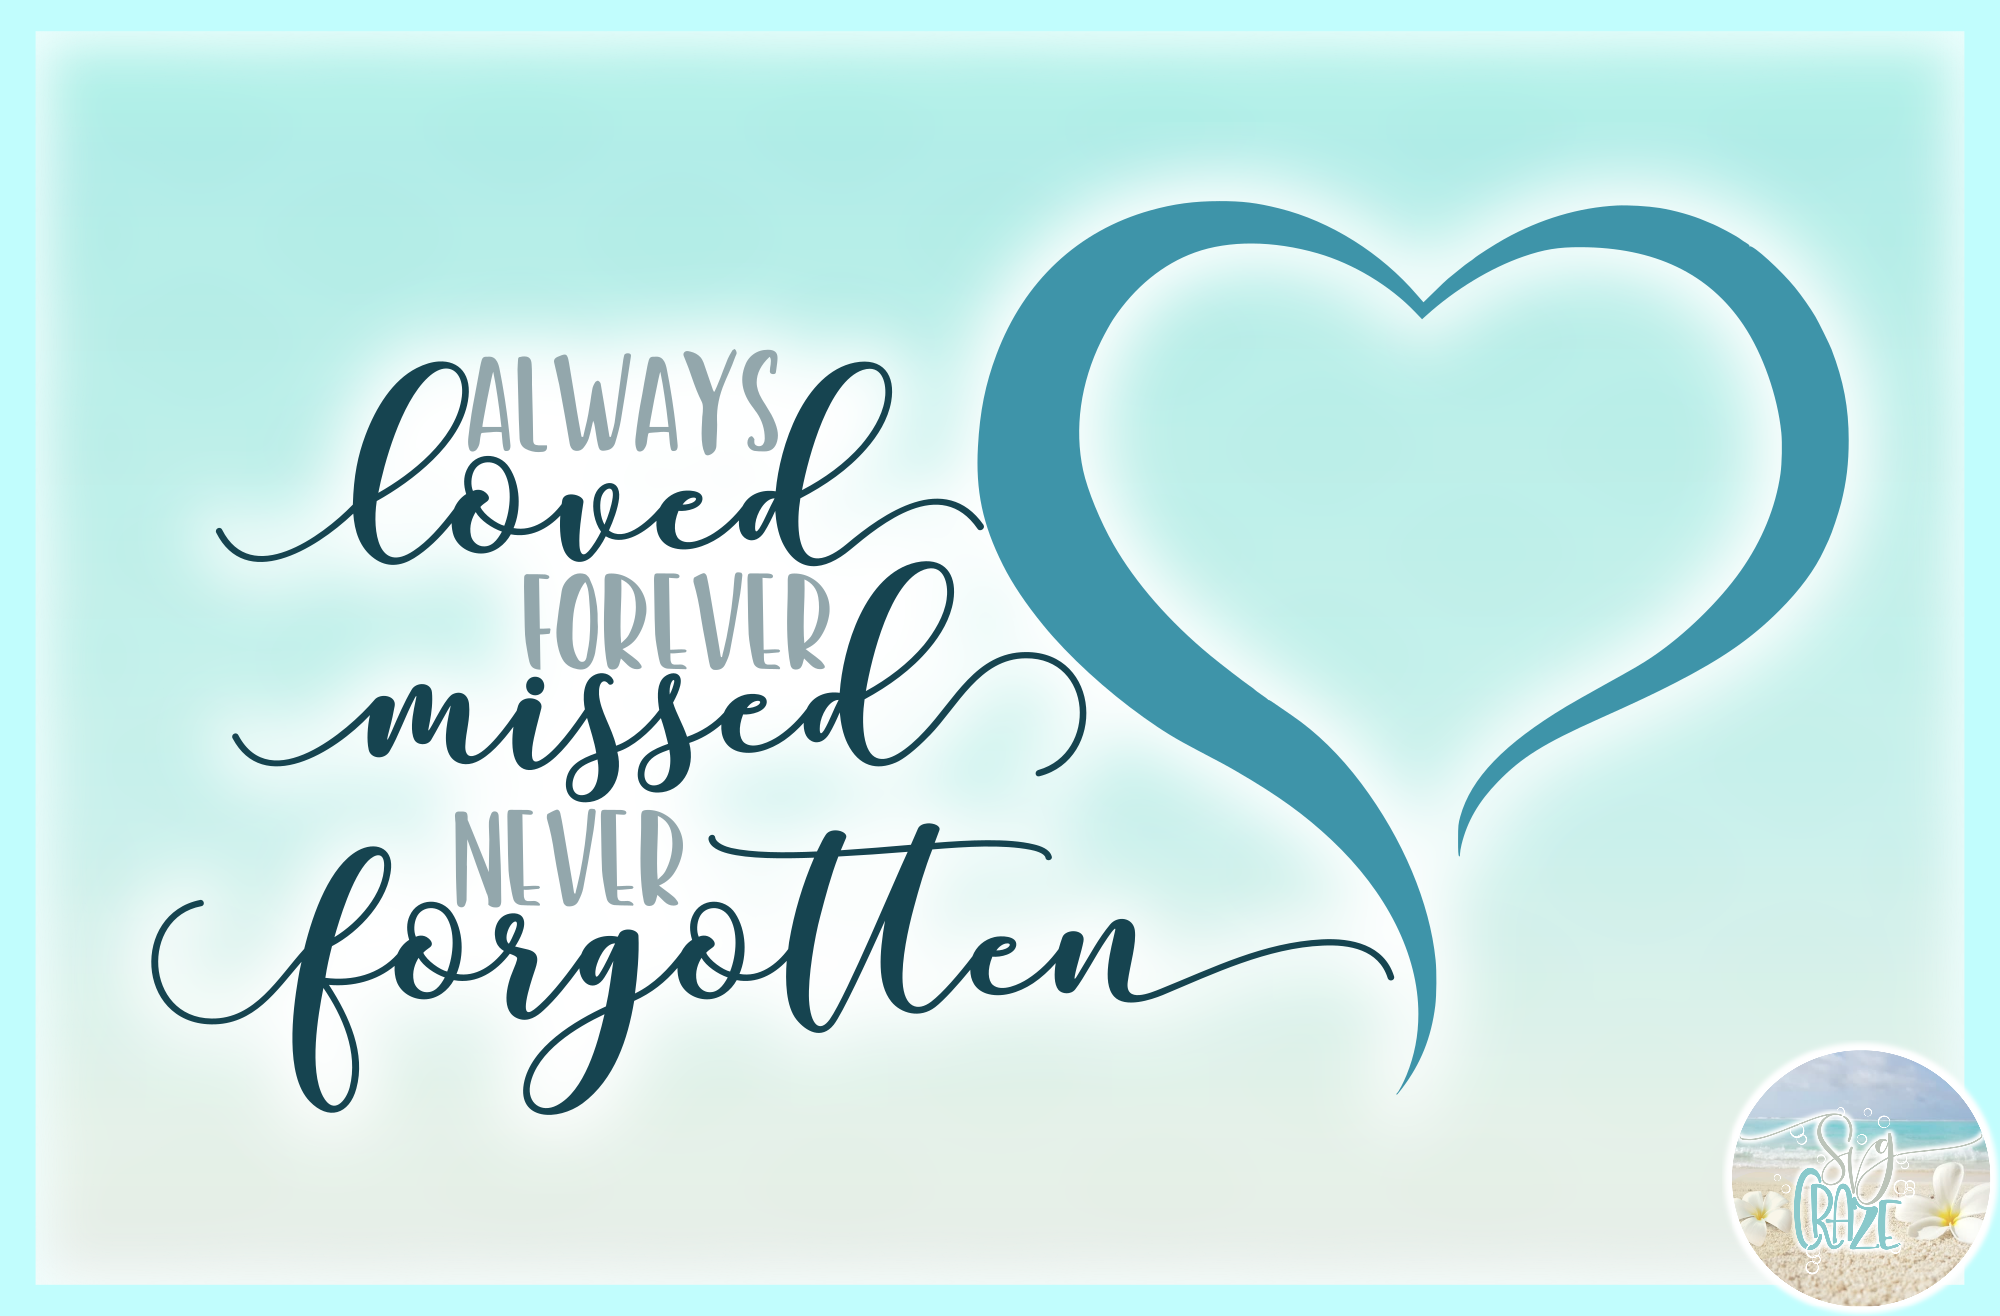 Always Loved Forever Missed Never Forgotten Memorial Quote example image 3